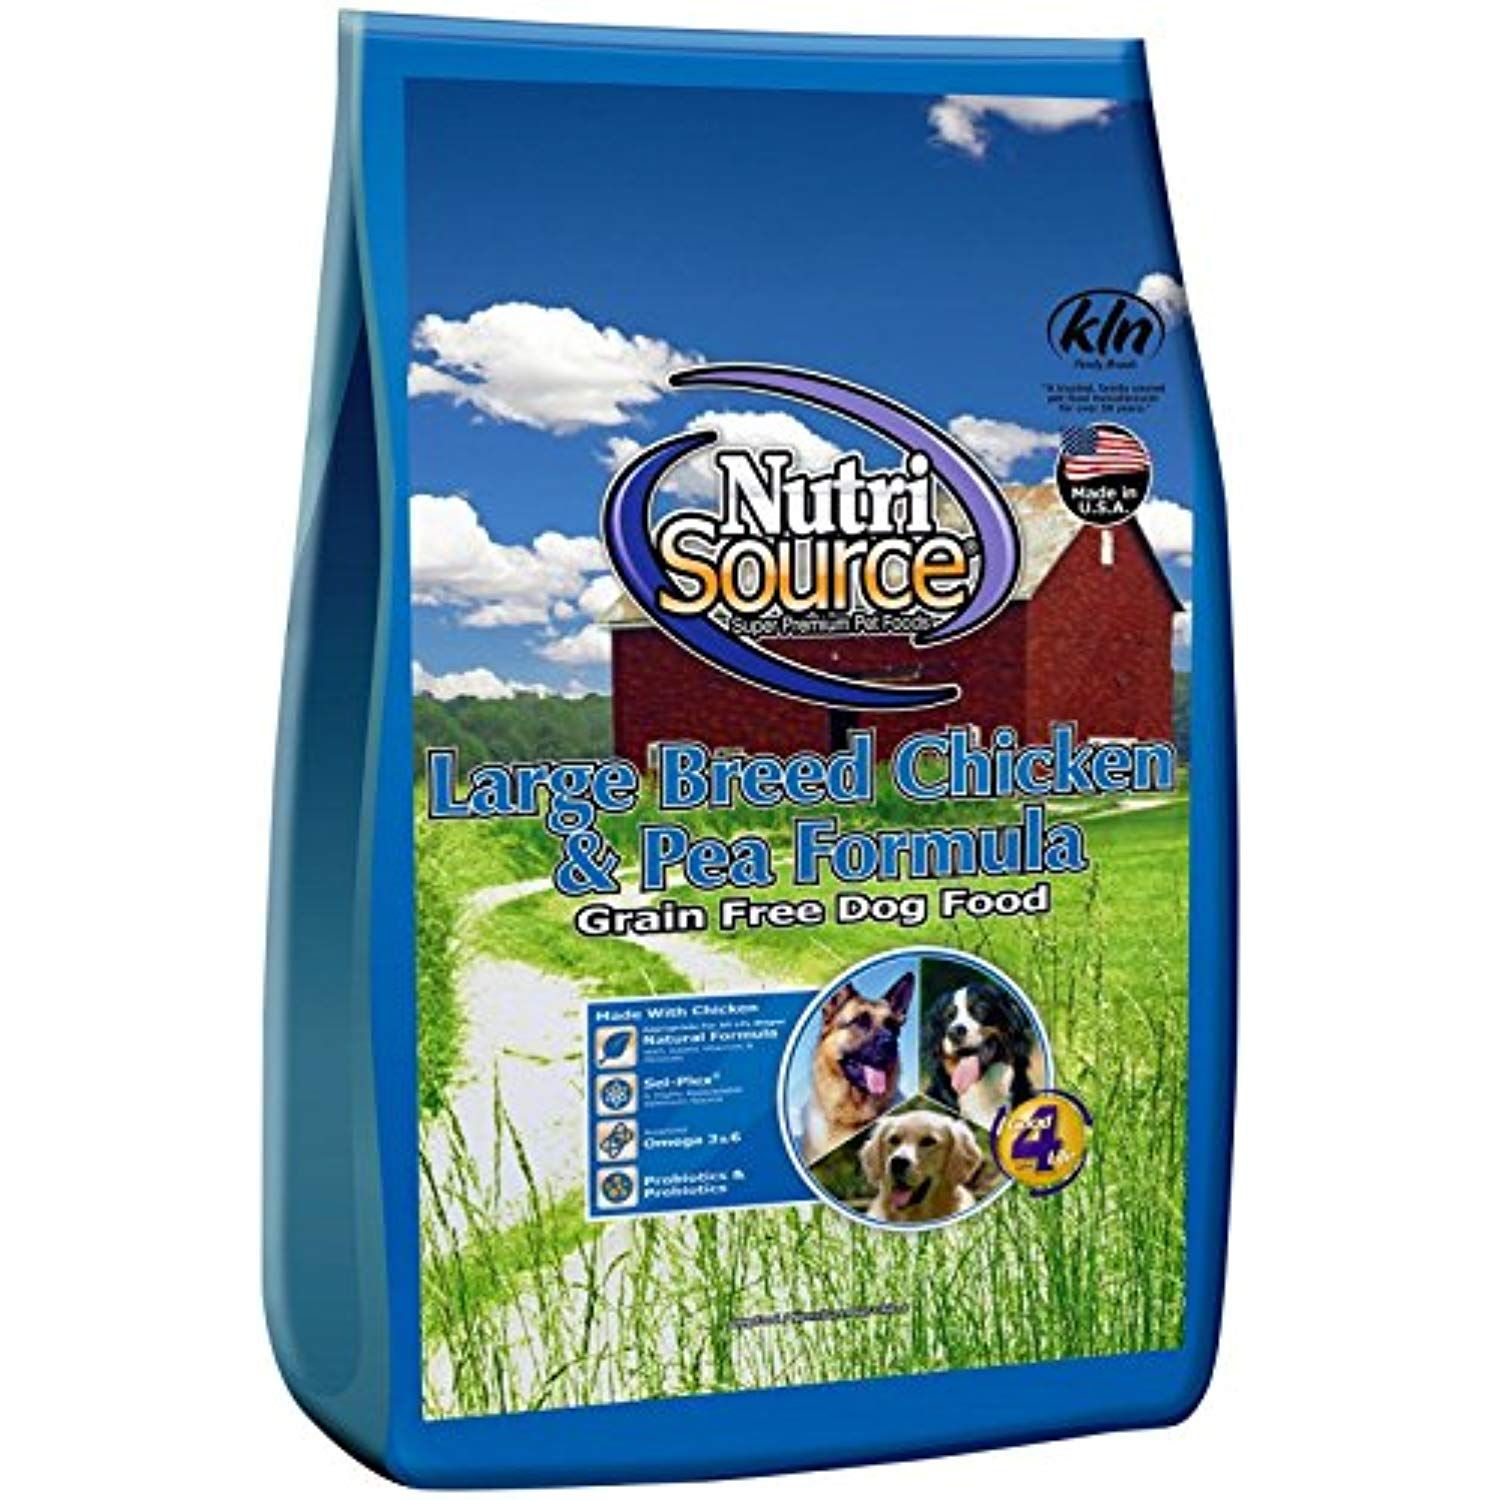 Nutri source grain free large breed chicken dogs